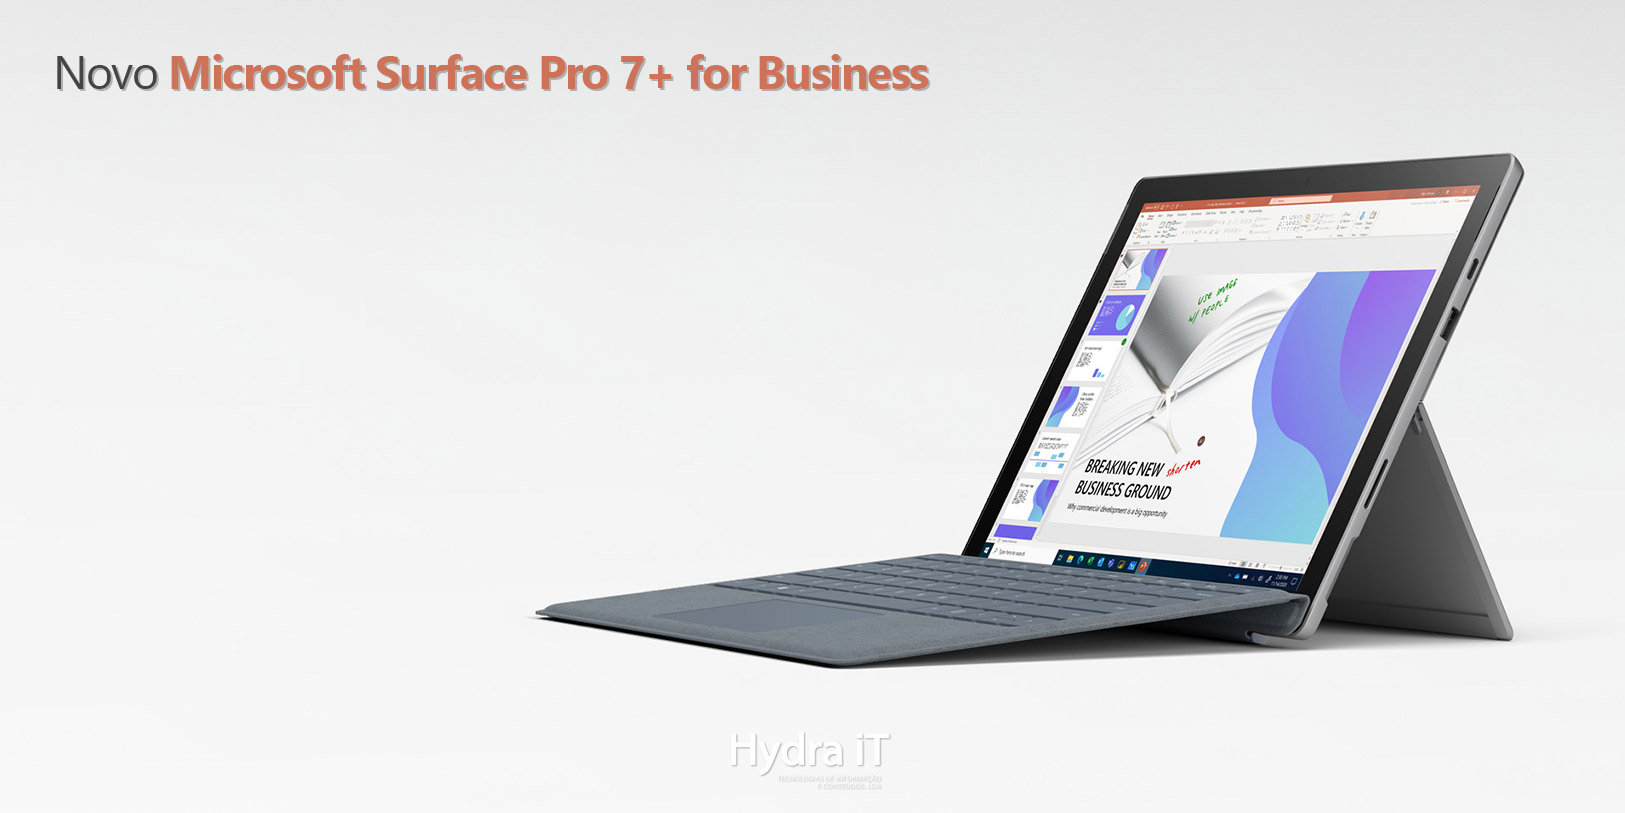 Novo Microsoft Surface Pro 7+ for Business 1